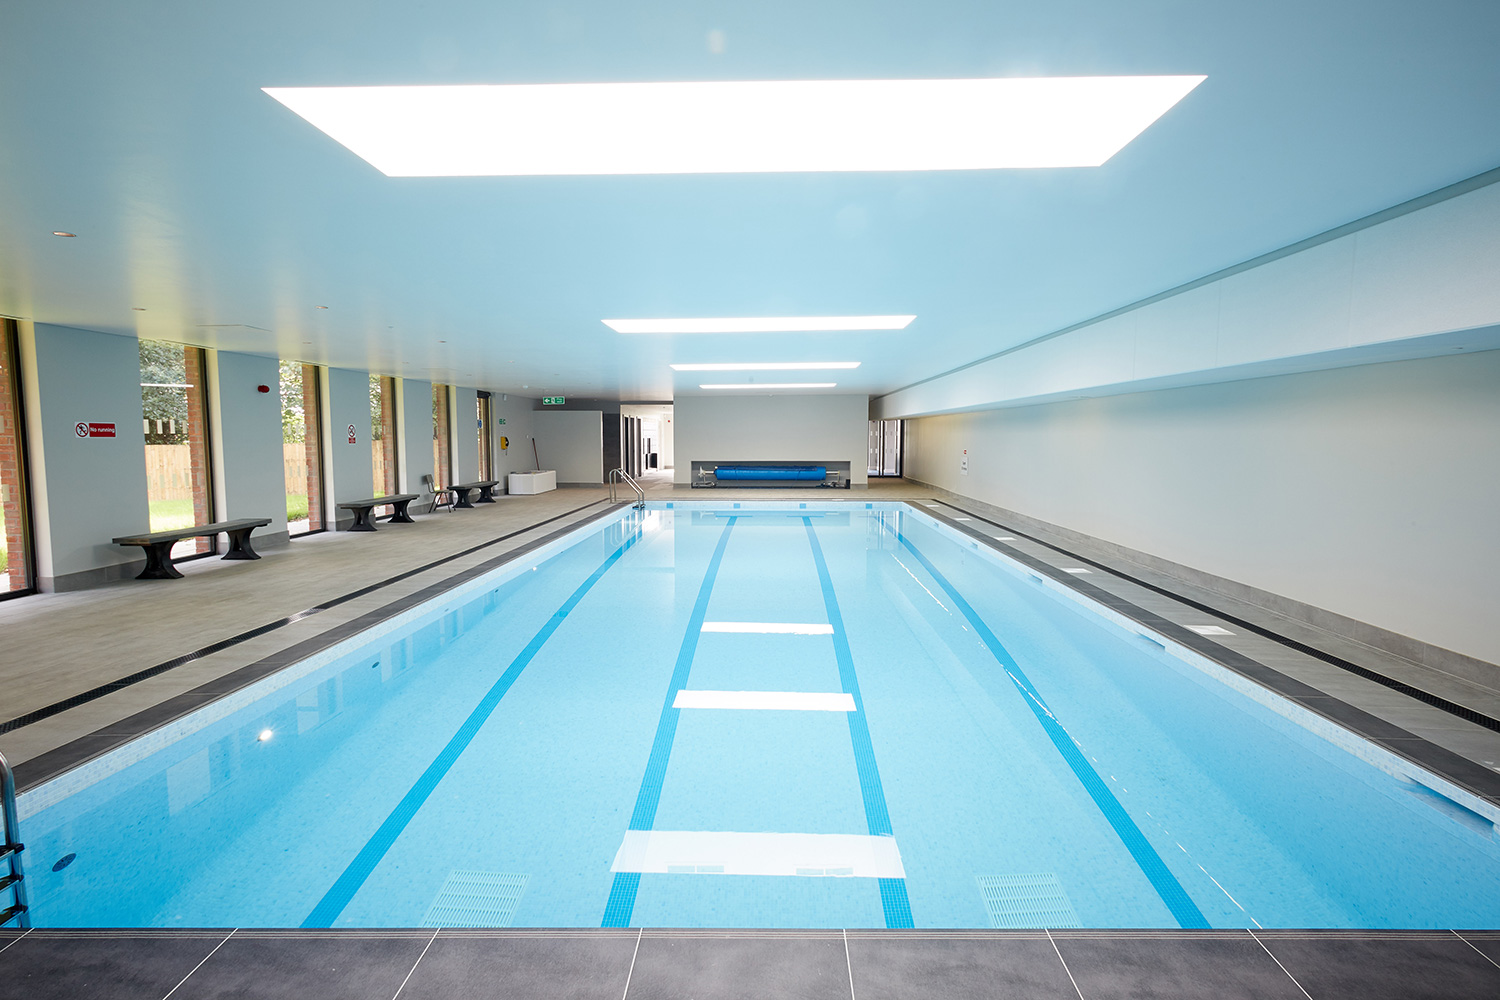 Guncast builds impressive swimming pool for prep school in Kent